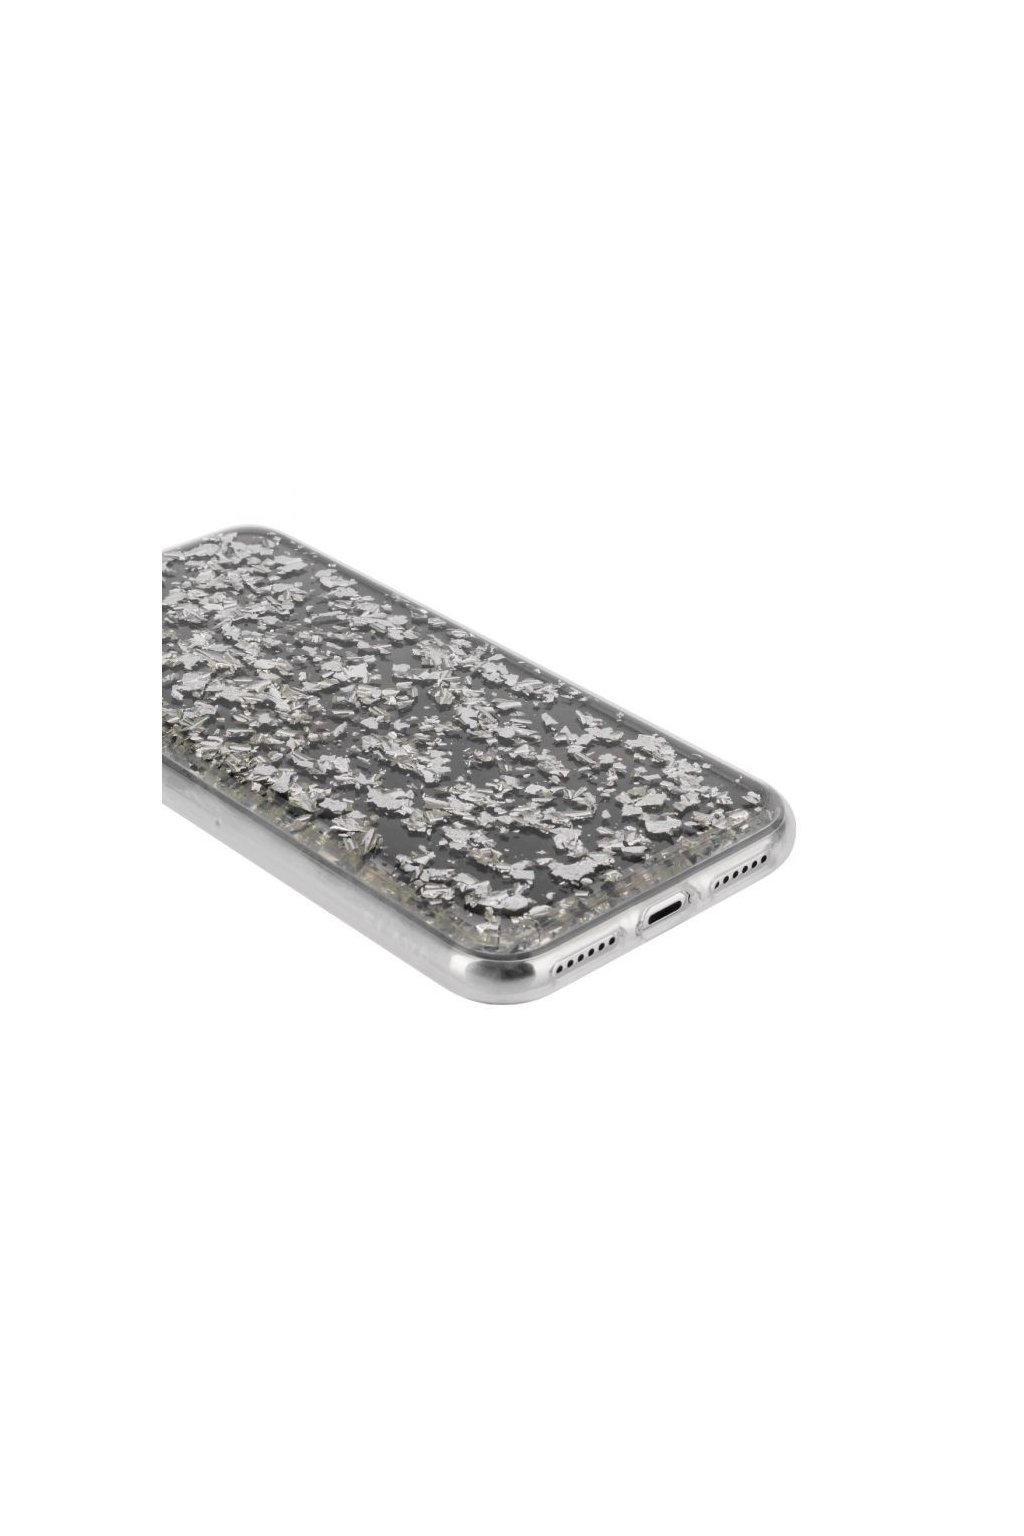 2147 flavr flakes silver iphone x xs